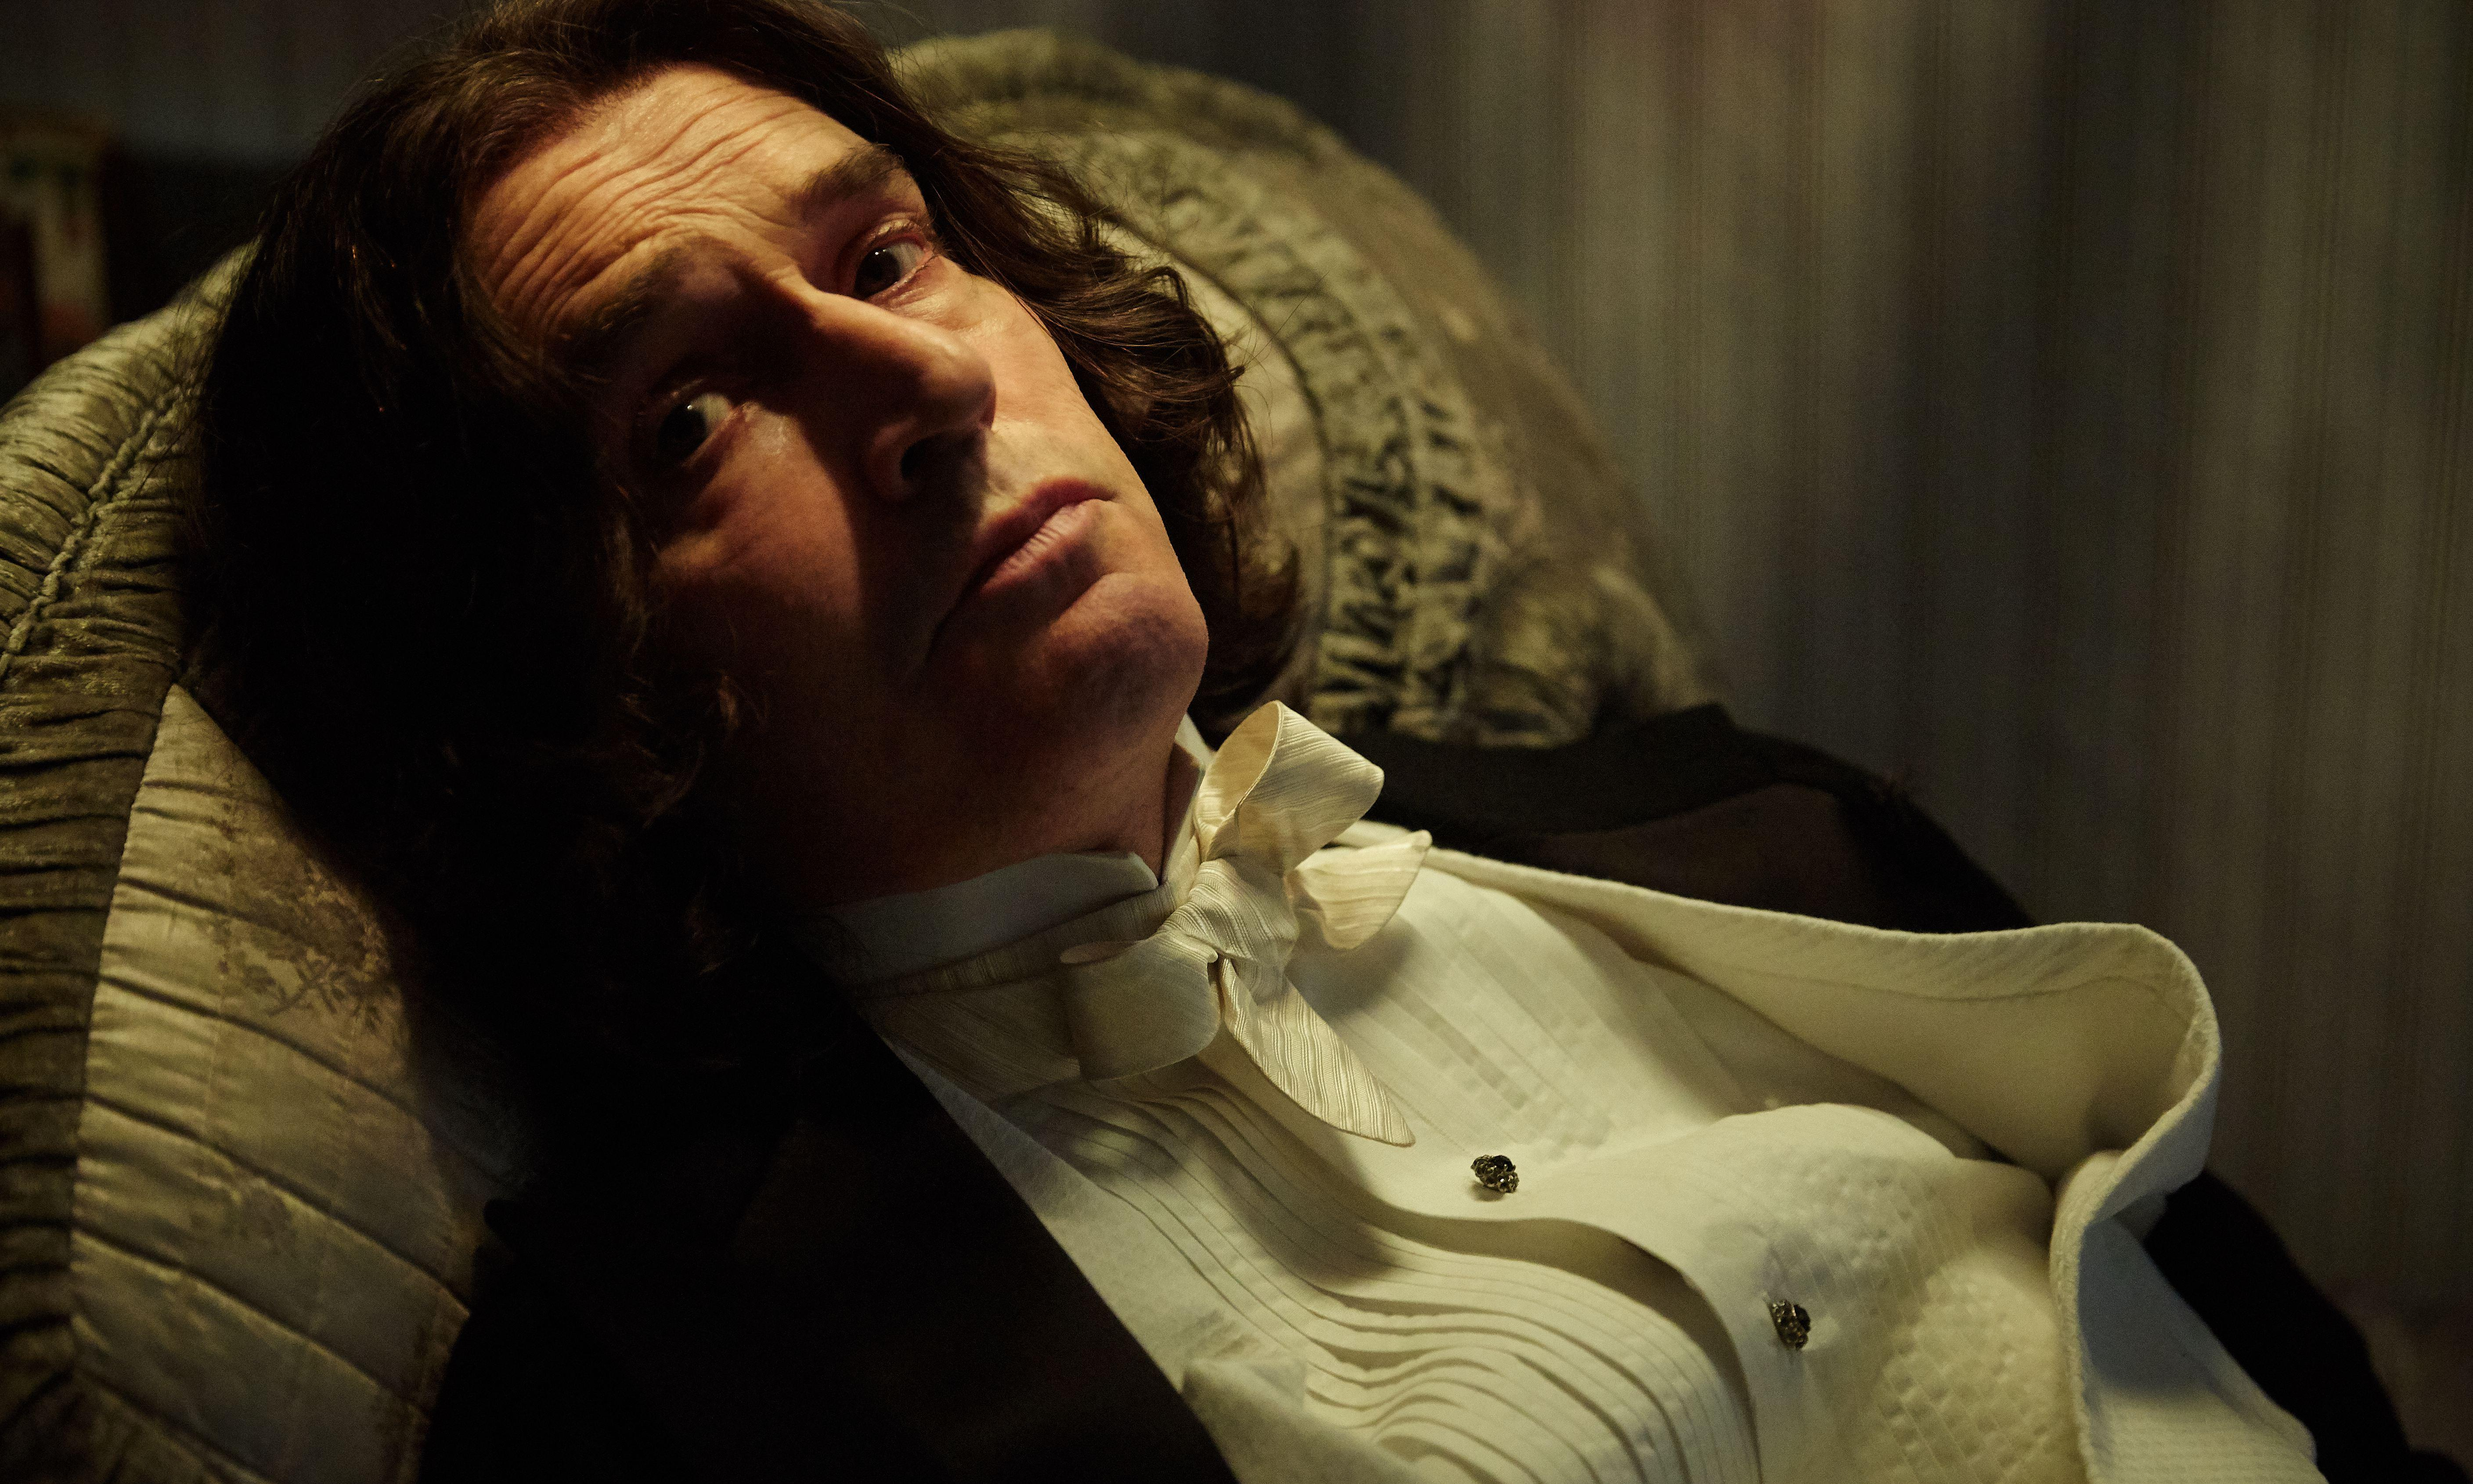 Oscar Wilde's grandson 'terribly moved' by Rupert Everett's biopic